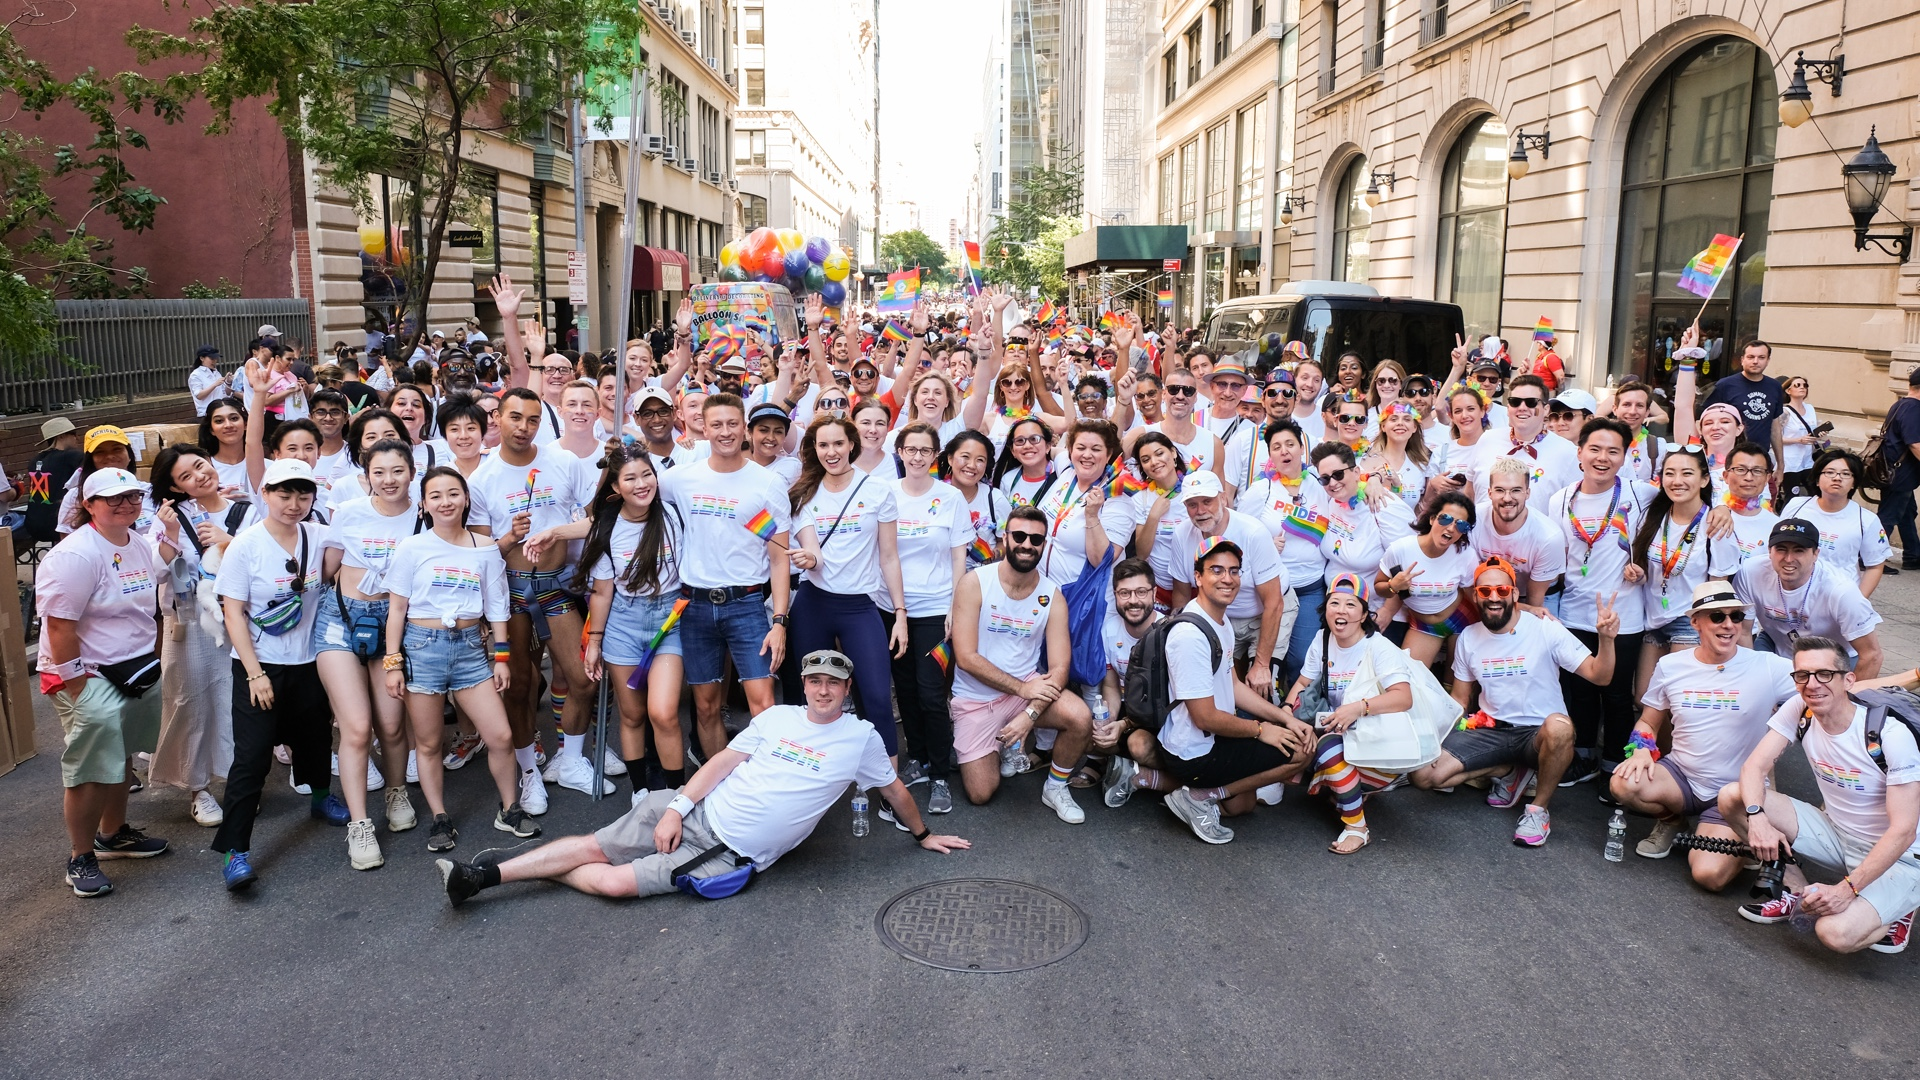 IBMers' on the street celebrating pride